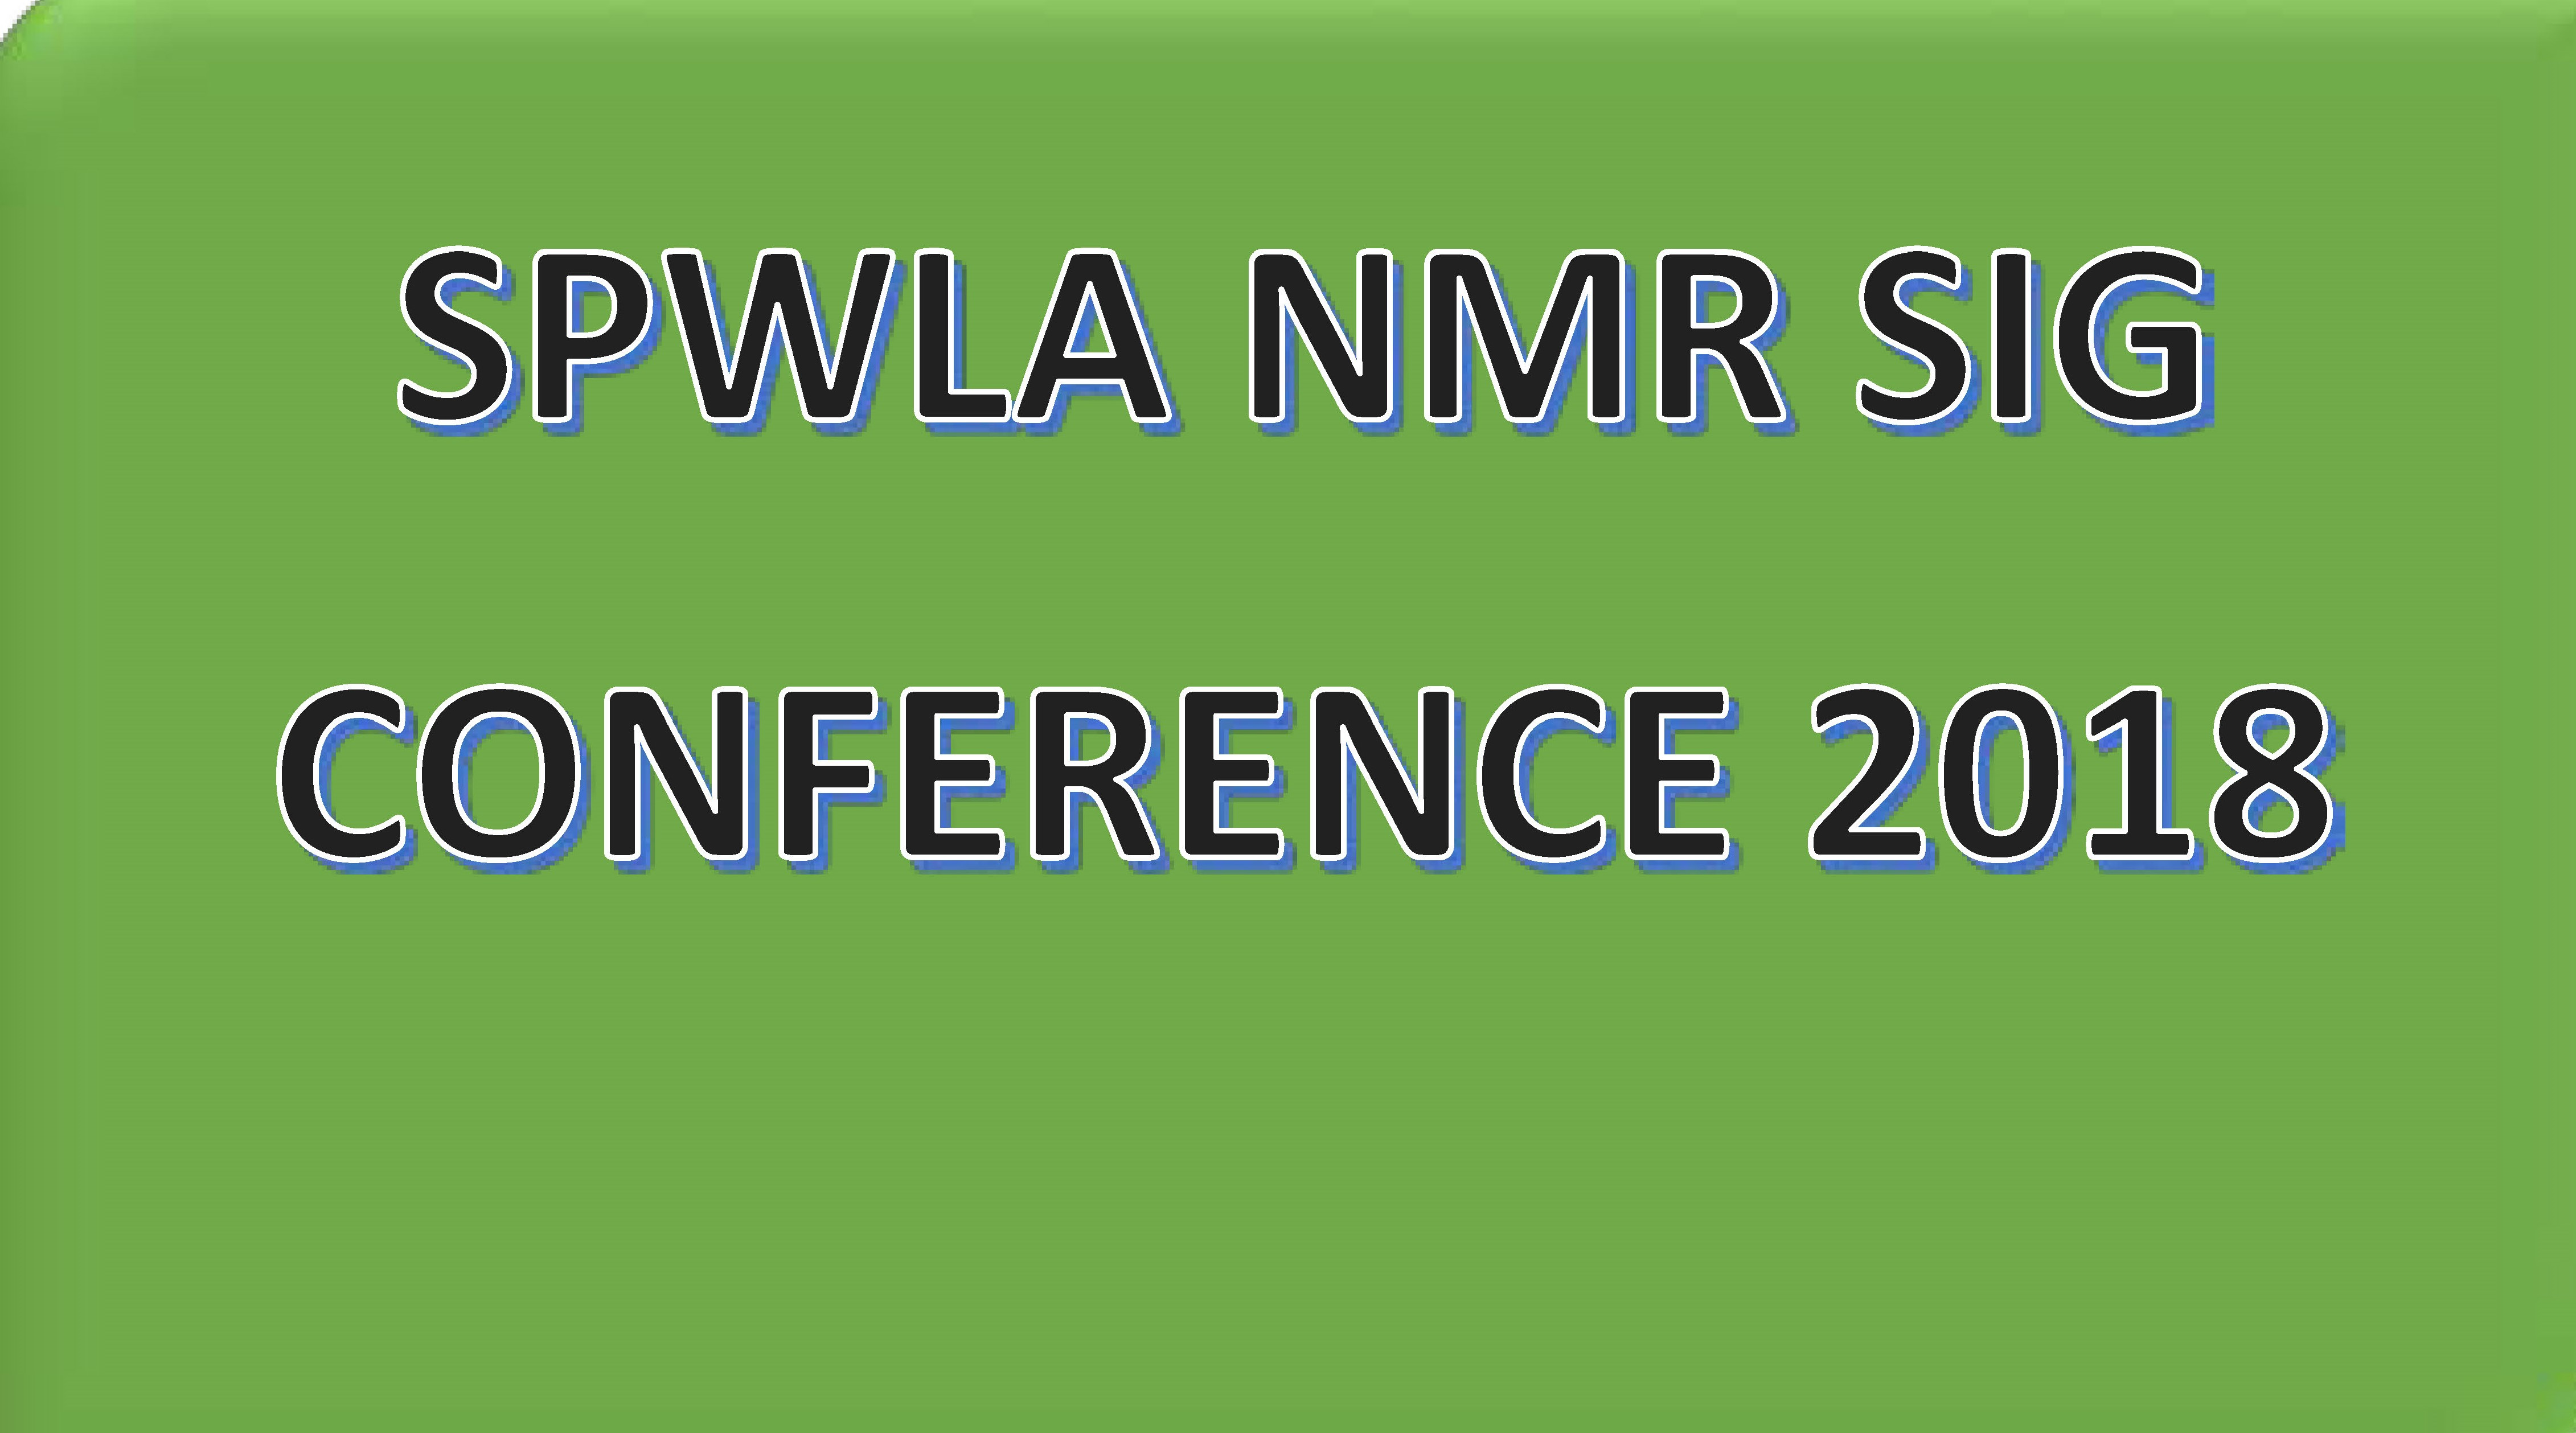 NMR SIG Conference 2018